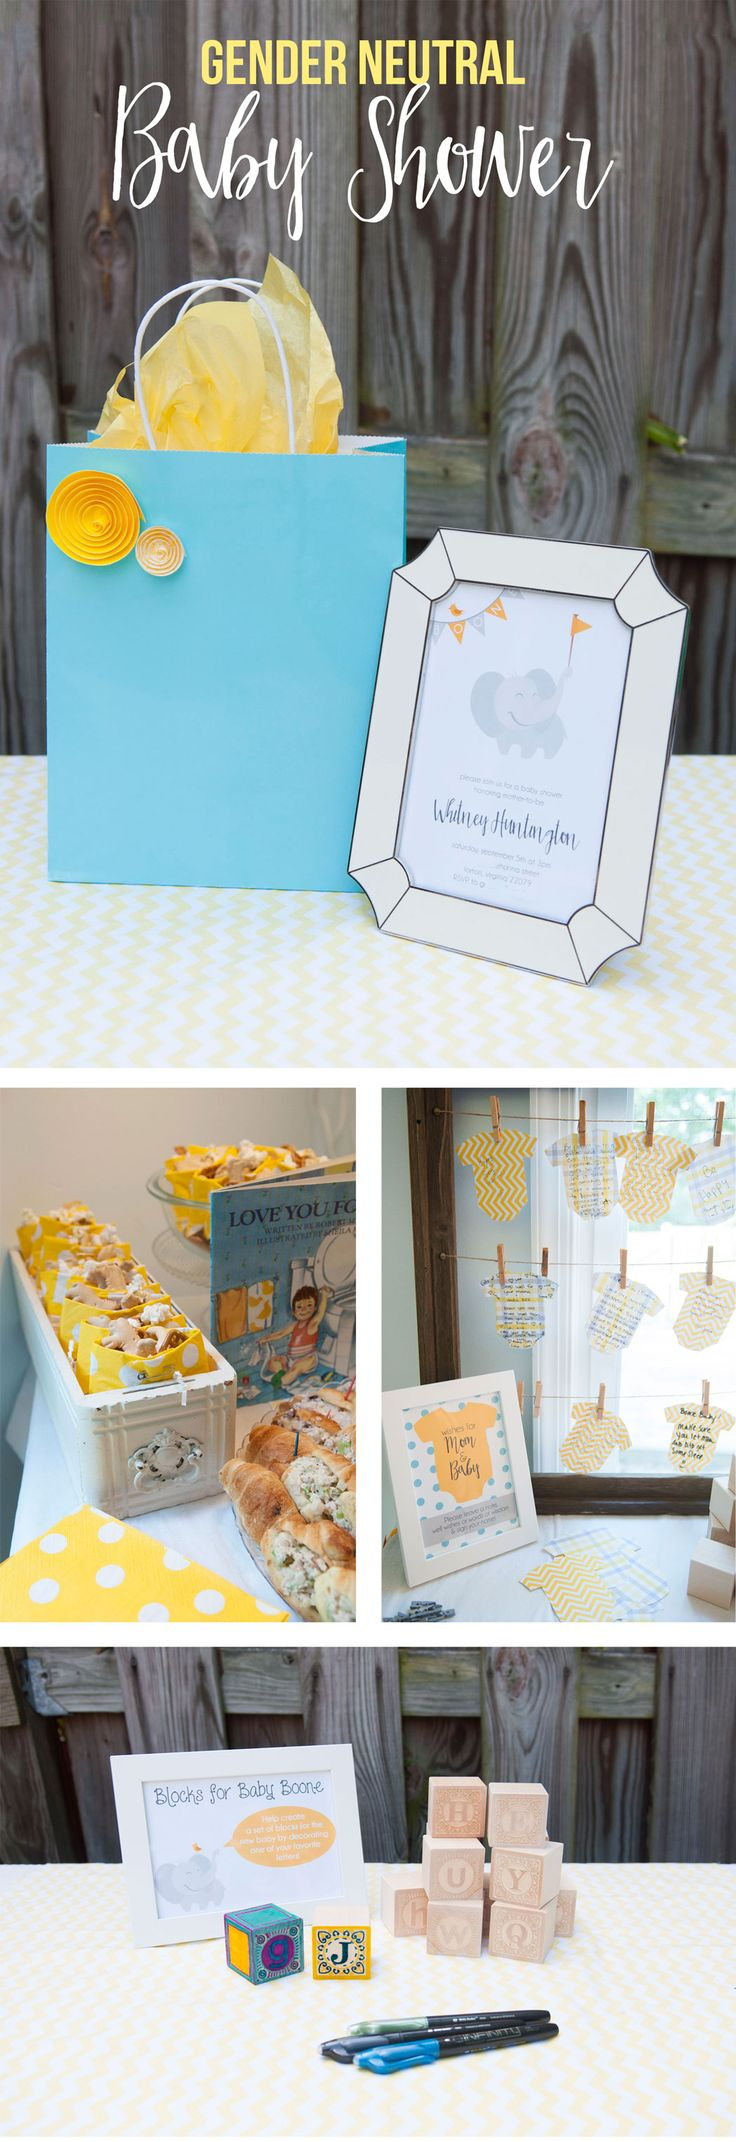 Bubbly Design Co: Details From The Gender Neutral Baby Shower We Hosted In